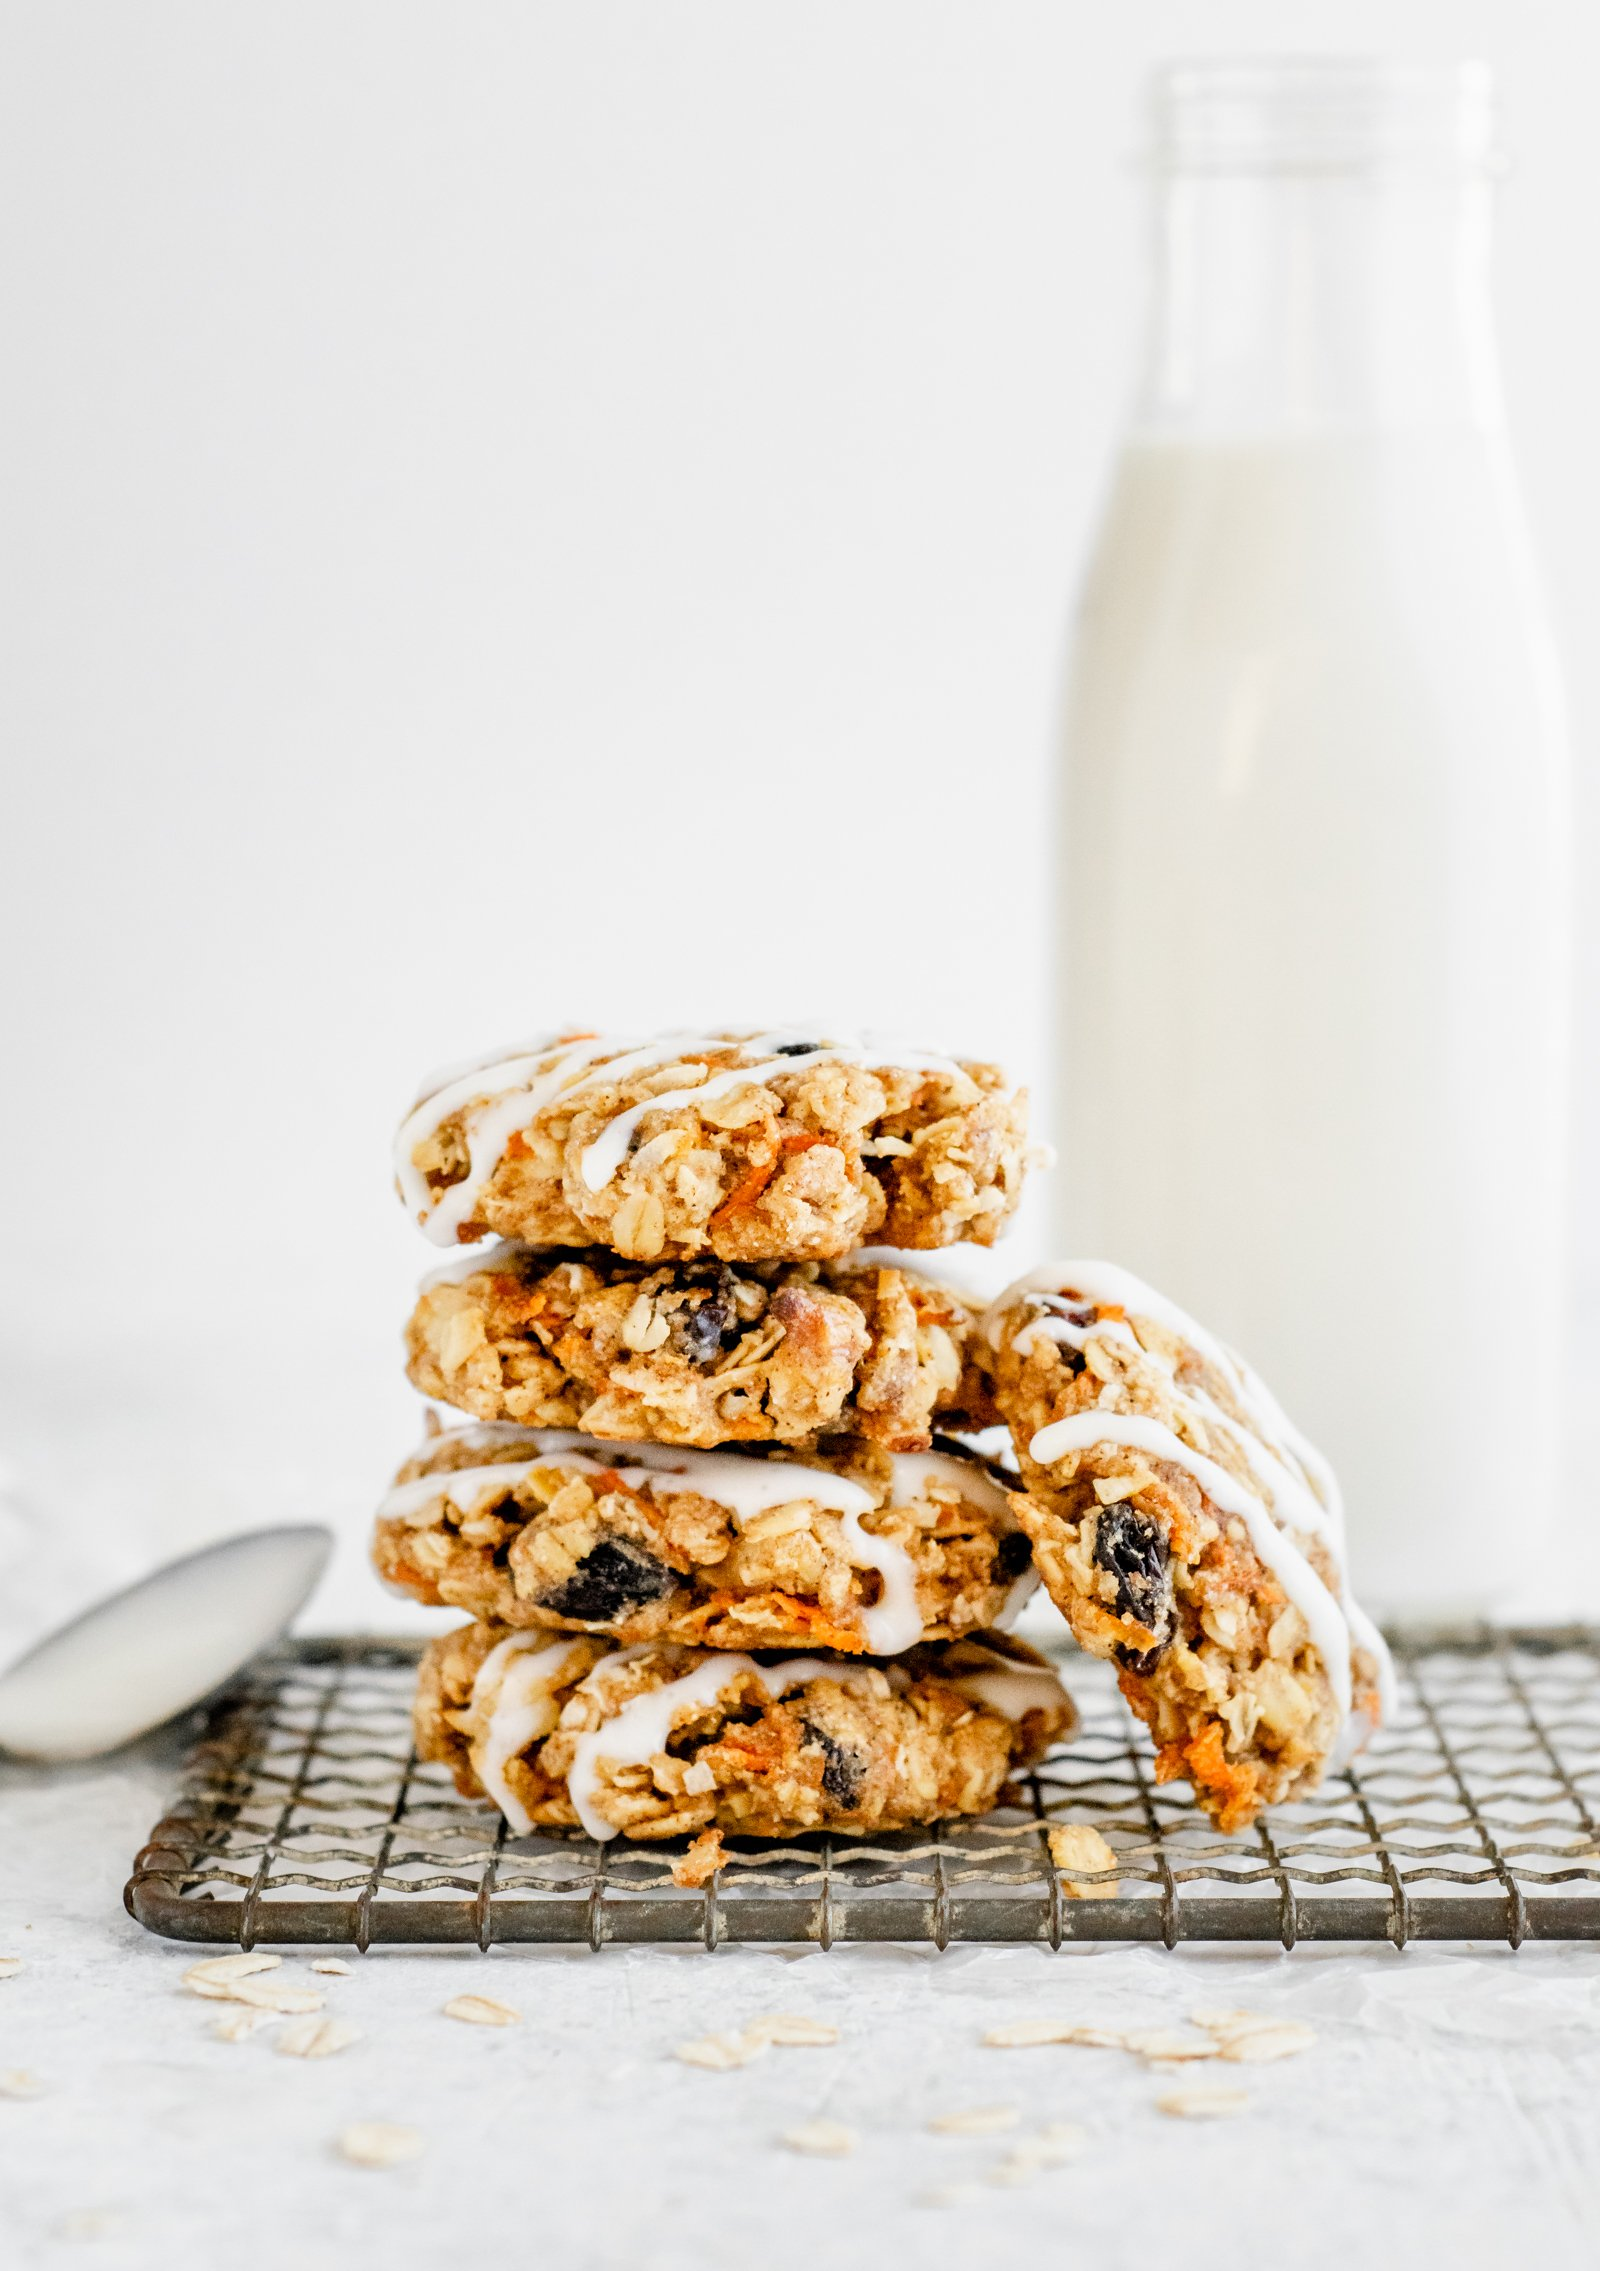 Delicious healthy carrot cake cookies bursting with coconut, raisins and pecans. These naturally sweetened cookies tastes just like the carrot cake you know and love.